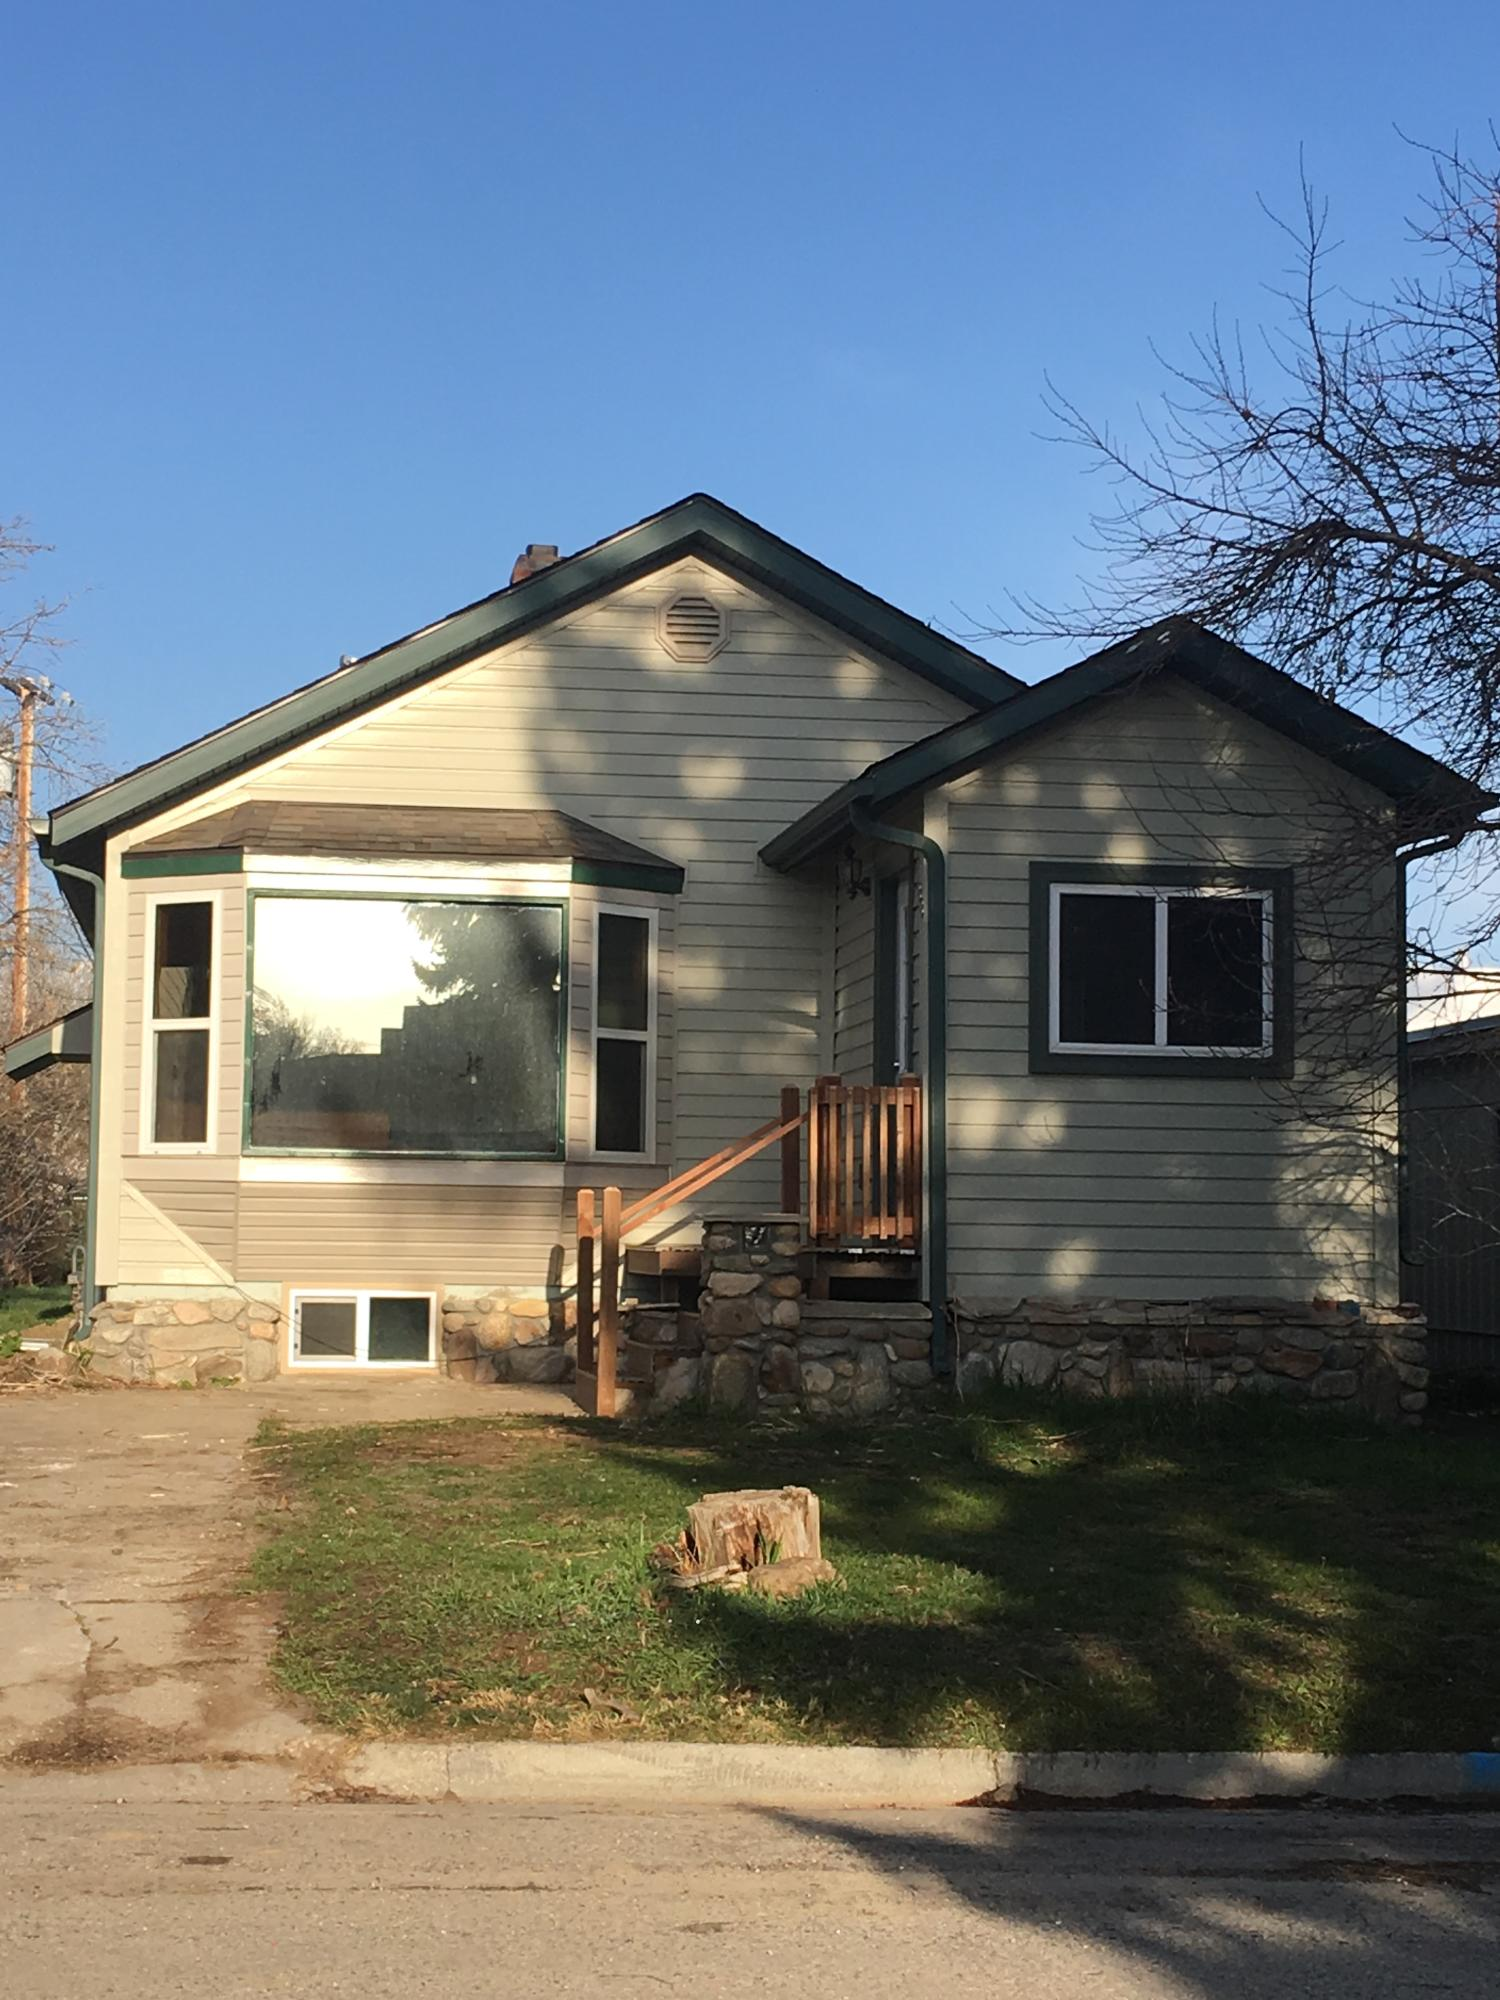 88 Carrington Avenue, Buffalo, Wyoming 82834, 2 Bedrooms Bedrooms, ,2 BathroomsBathrooms,Residential,For Sale,Carrington,17-607